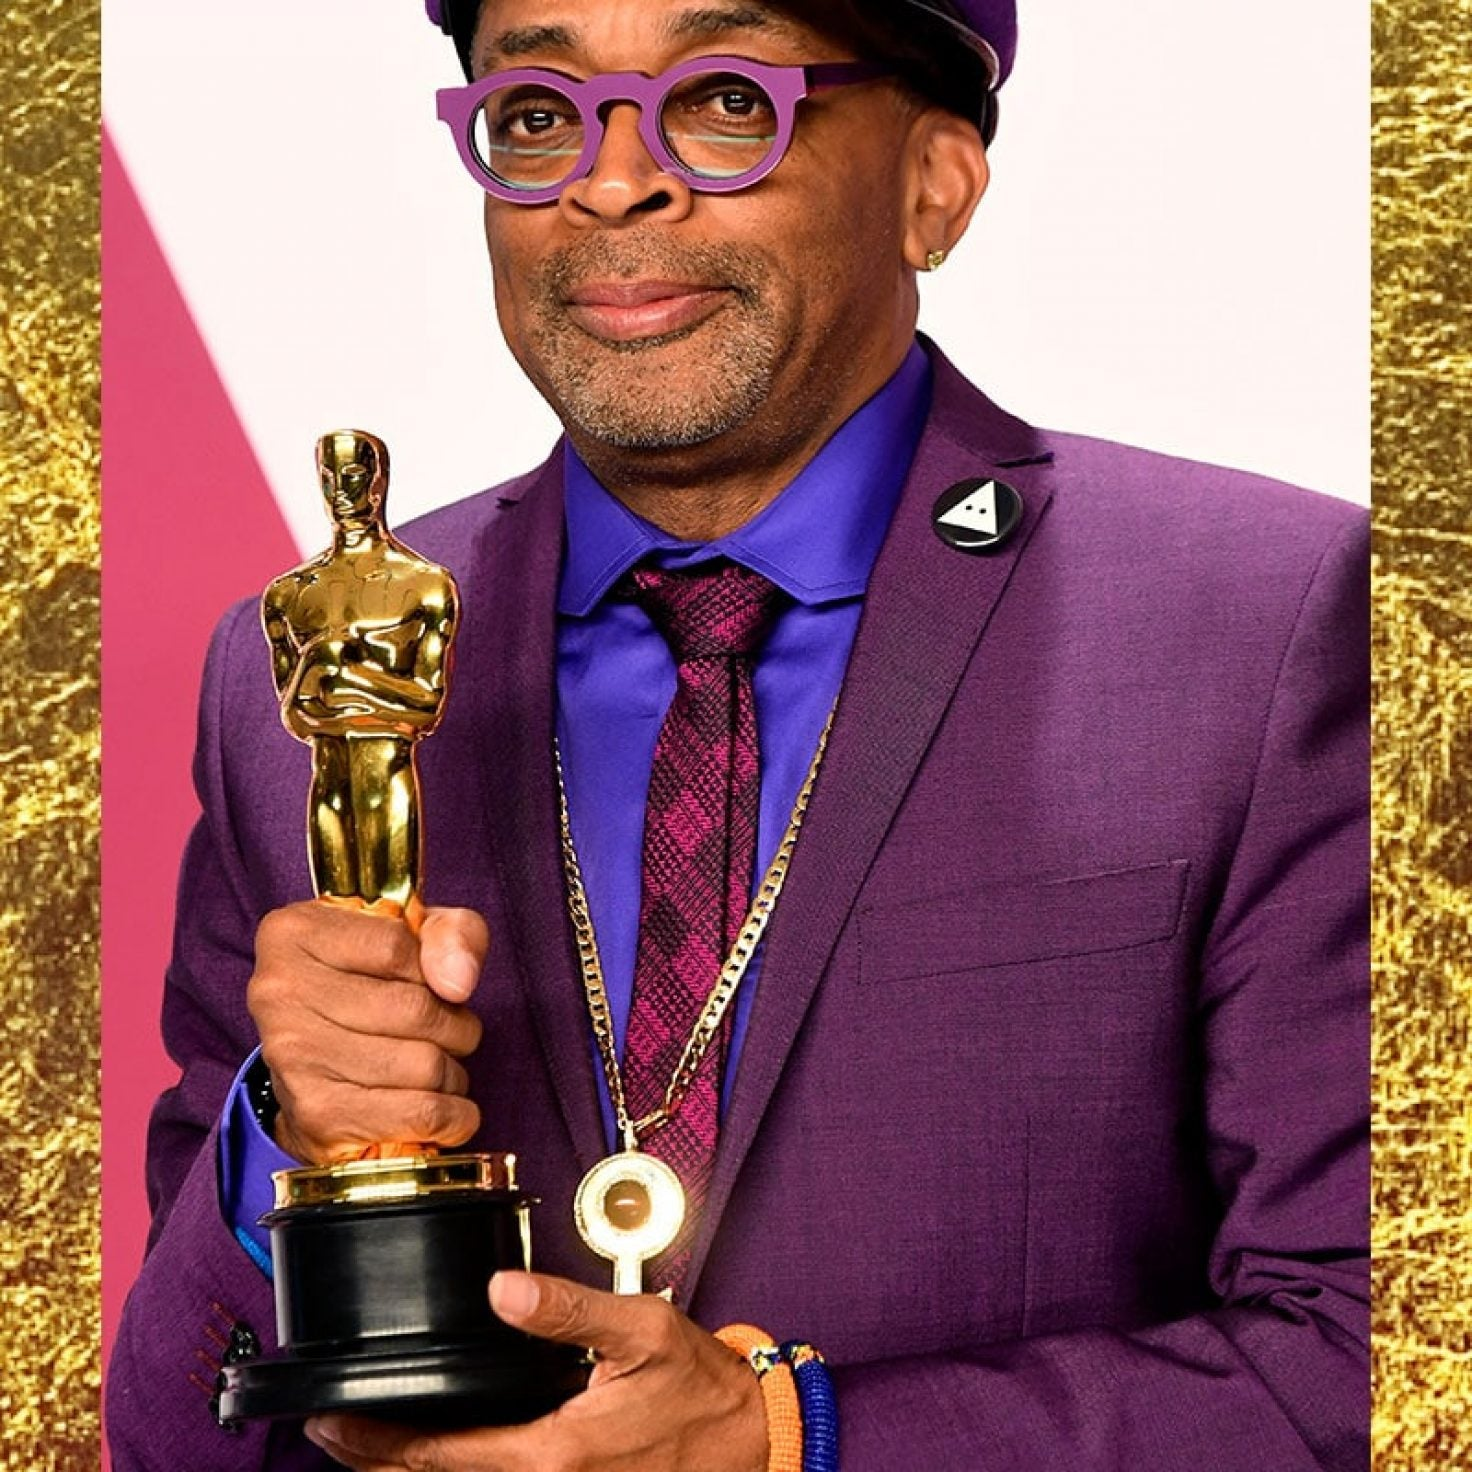 It's About Time! Spike Lee Gets a Standing Ovation As He Accepts His First Oscar Award